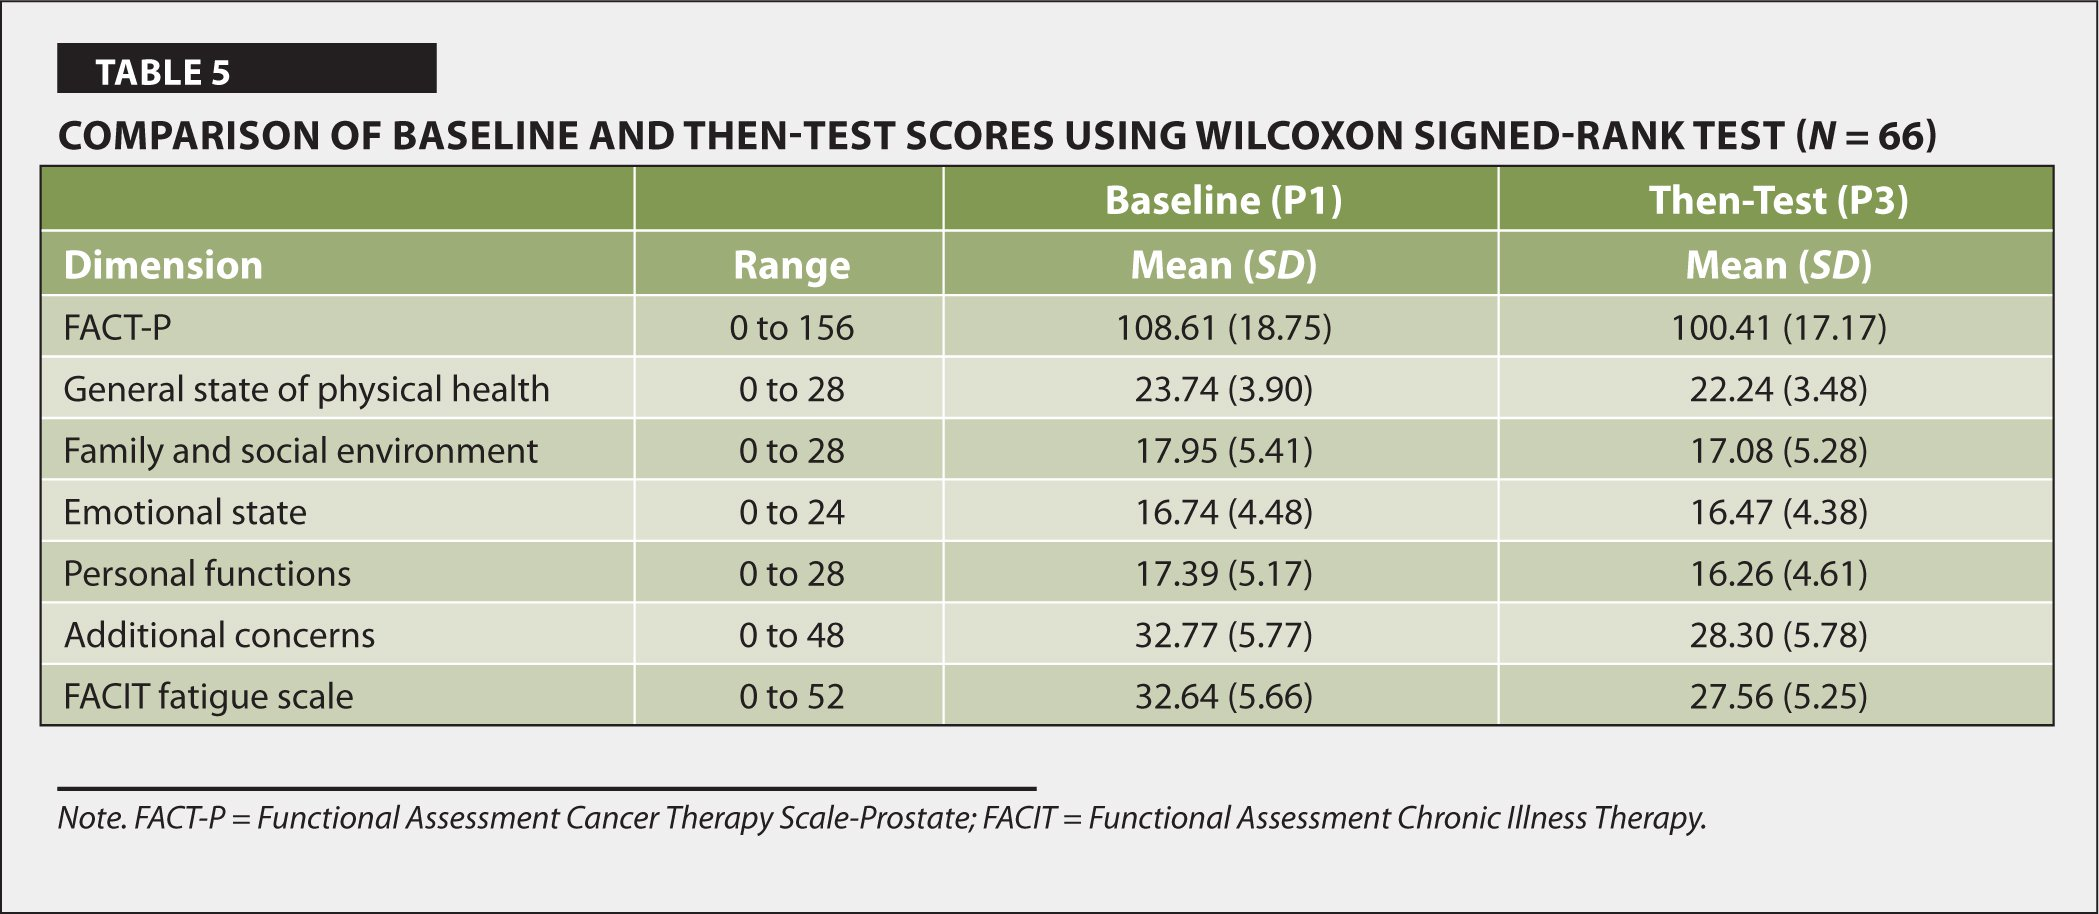 Comparison of Baseline and Then-Test Scores Using Wilcoxon Signed-rank Test (N = 66)